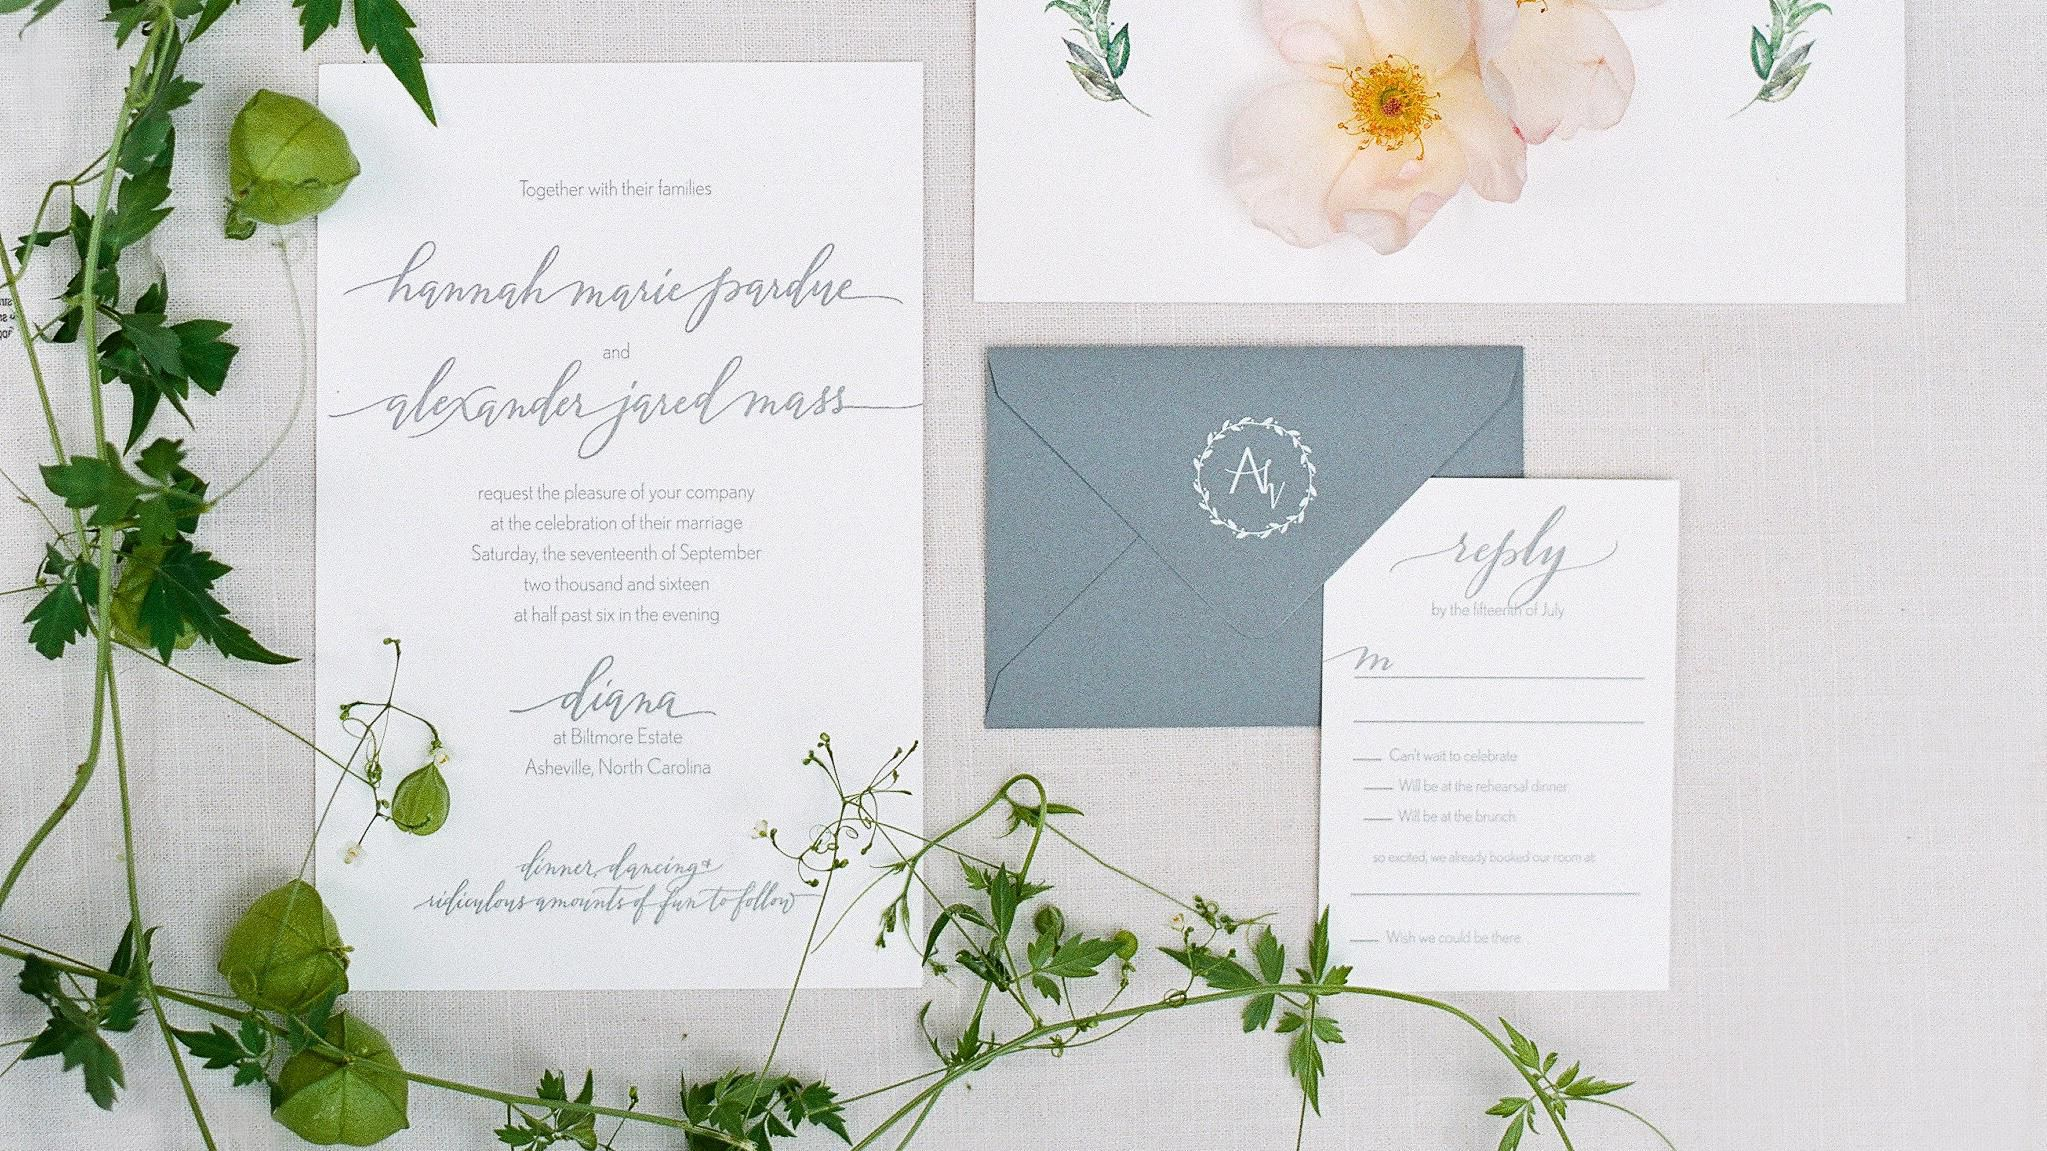 A Definitive Guide To Hand Canceling Your Wedding Invitation Envelopes